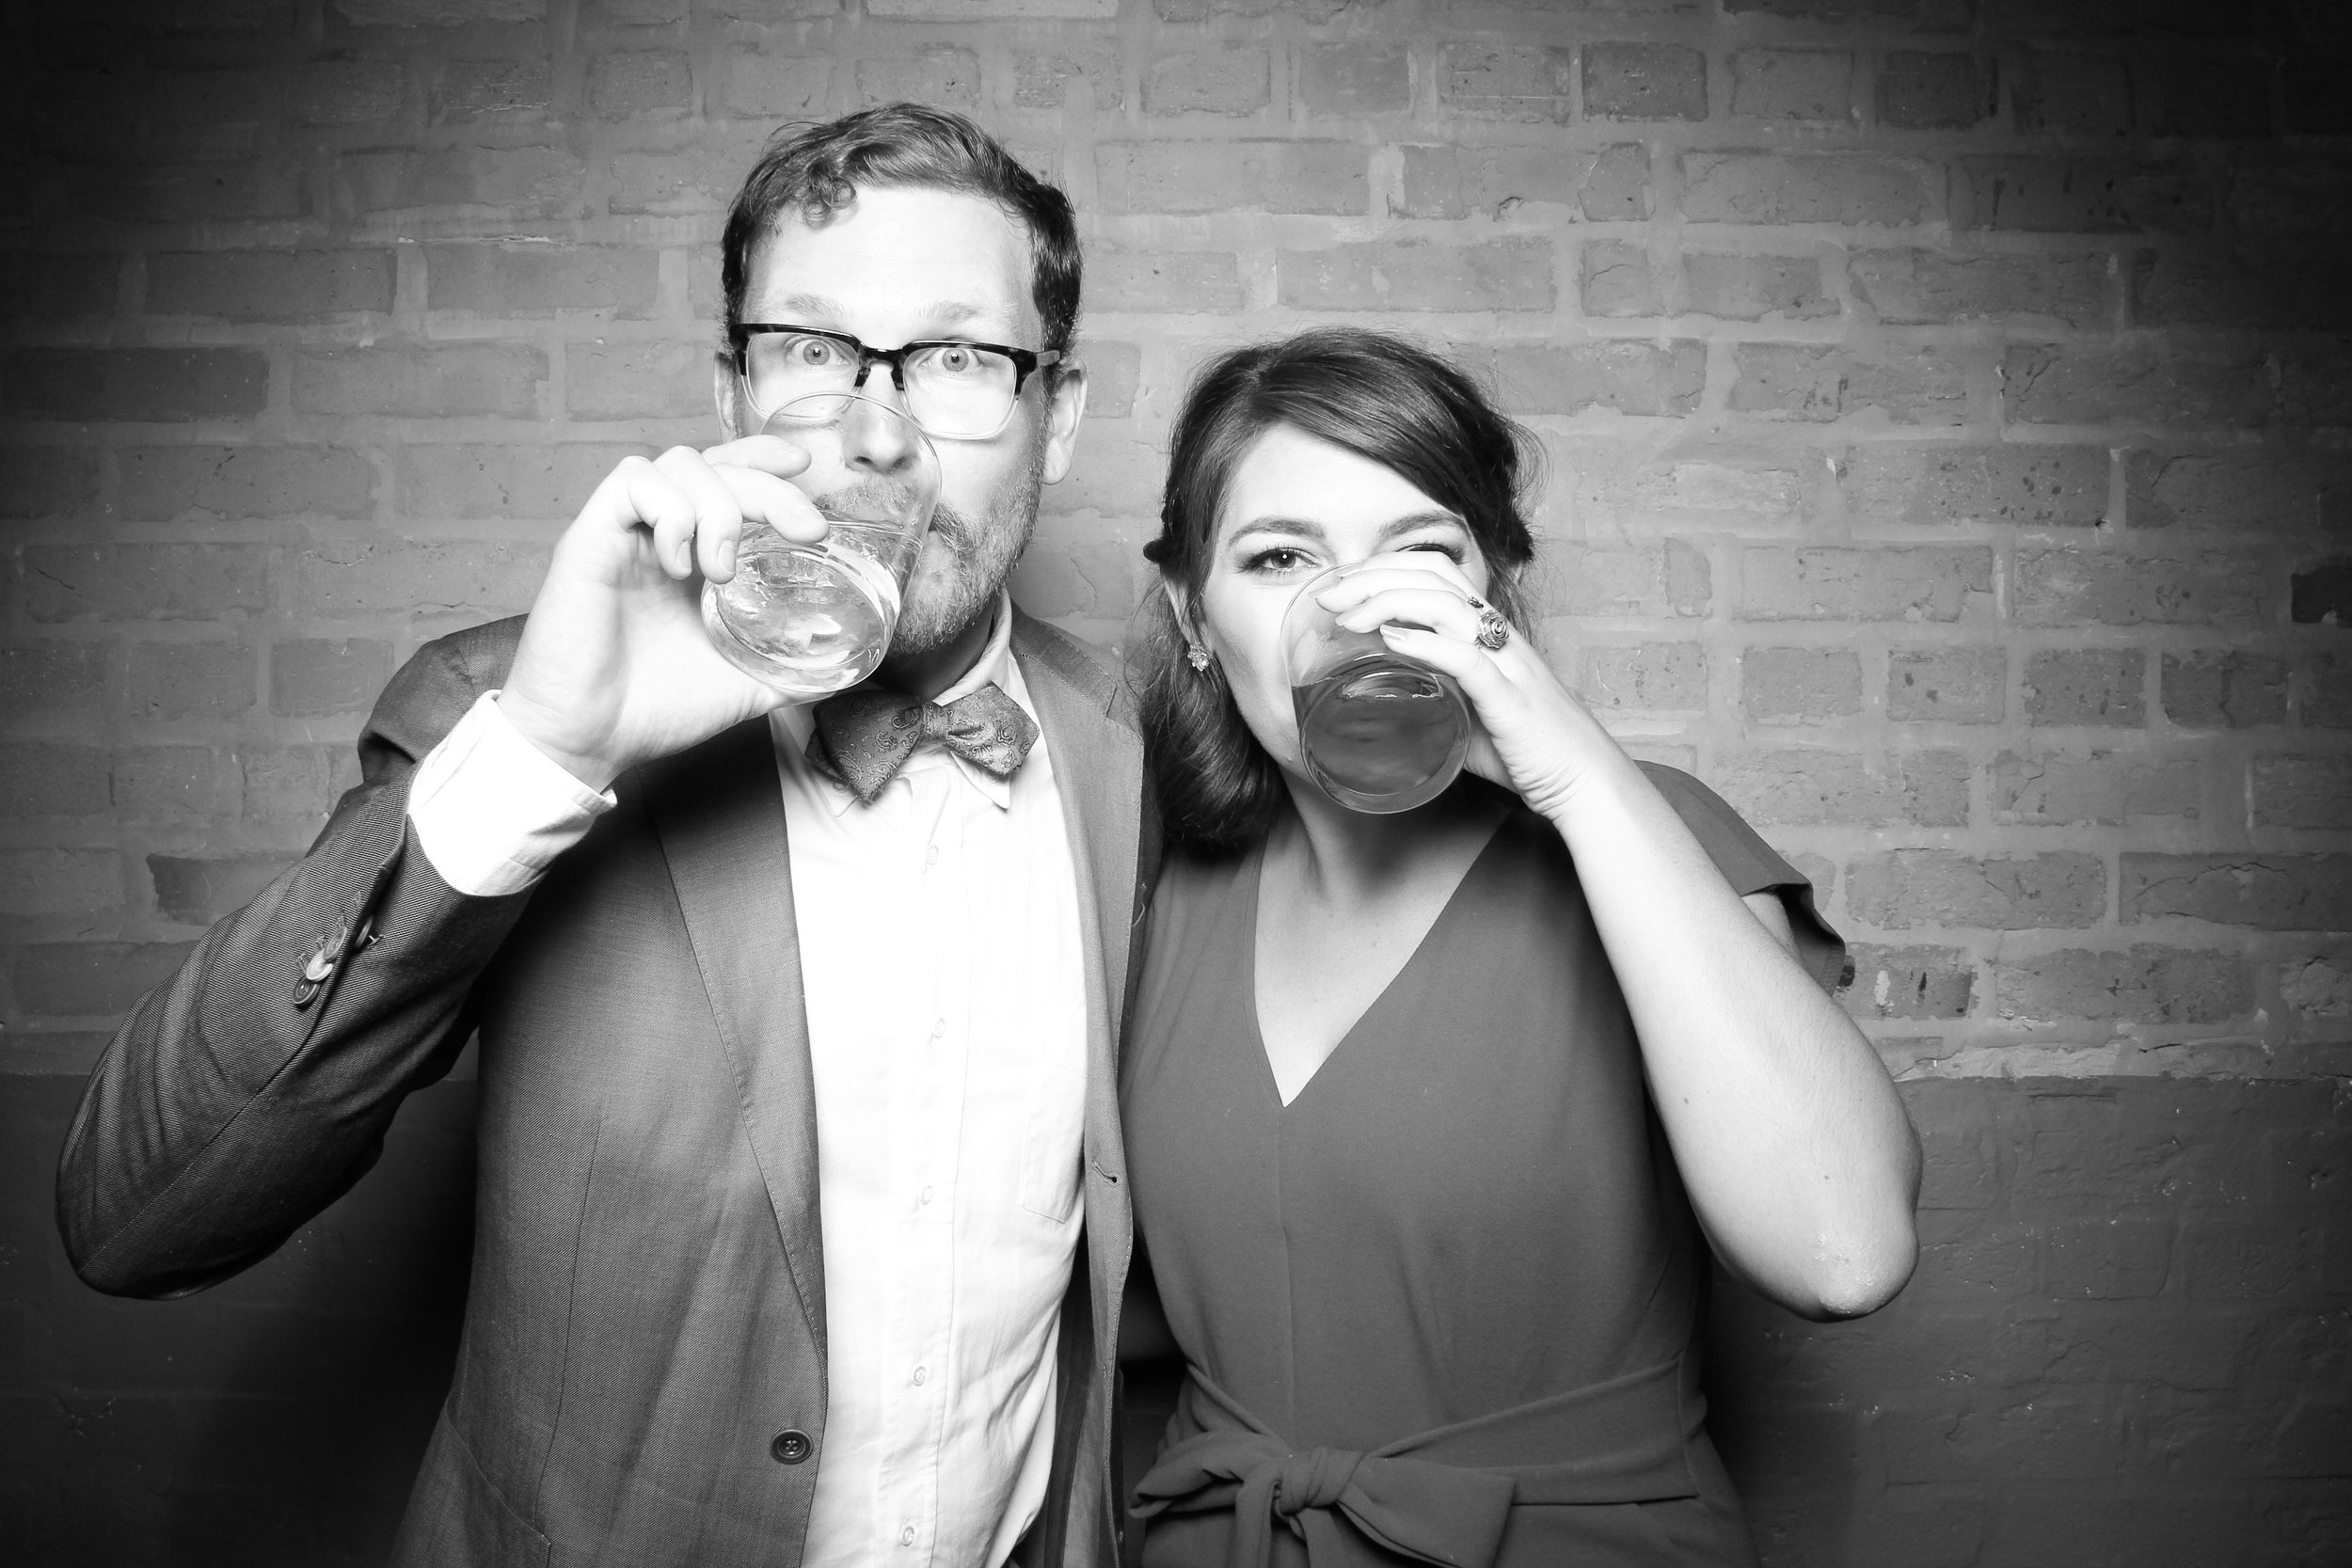 Chicago_Vintage_Wedding_Photobooth_Fairlie_18.jpg